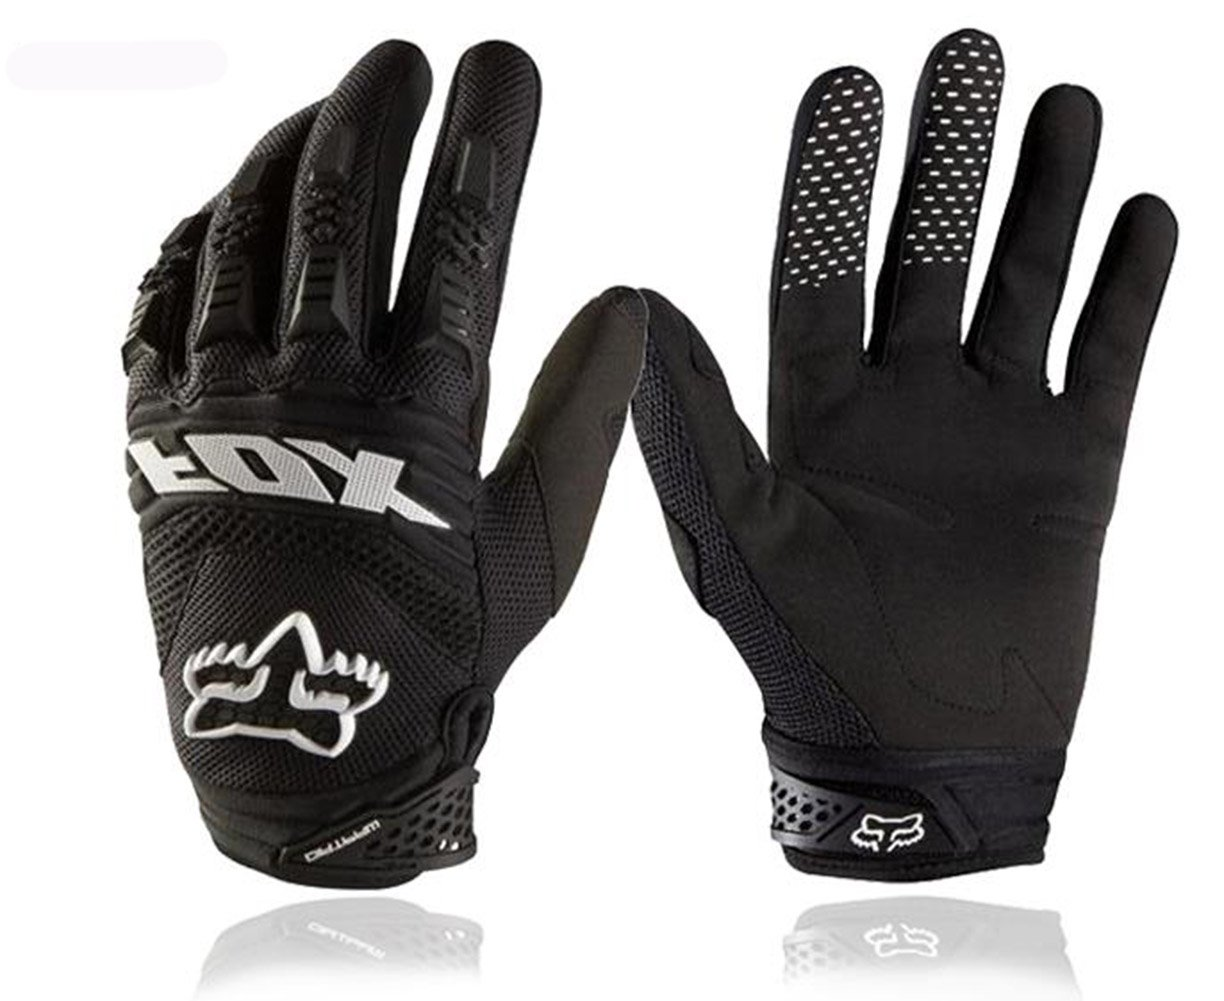 Motorcycle gloves tight or loose - Crazystone S Fox Motorcycle Full Finger Gloves For Enduro Motocross